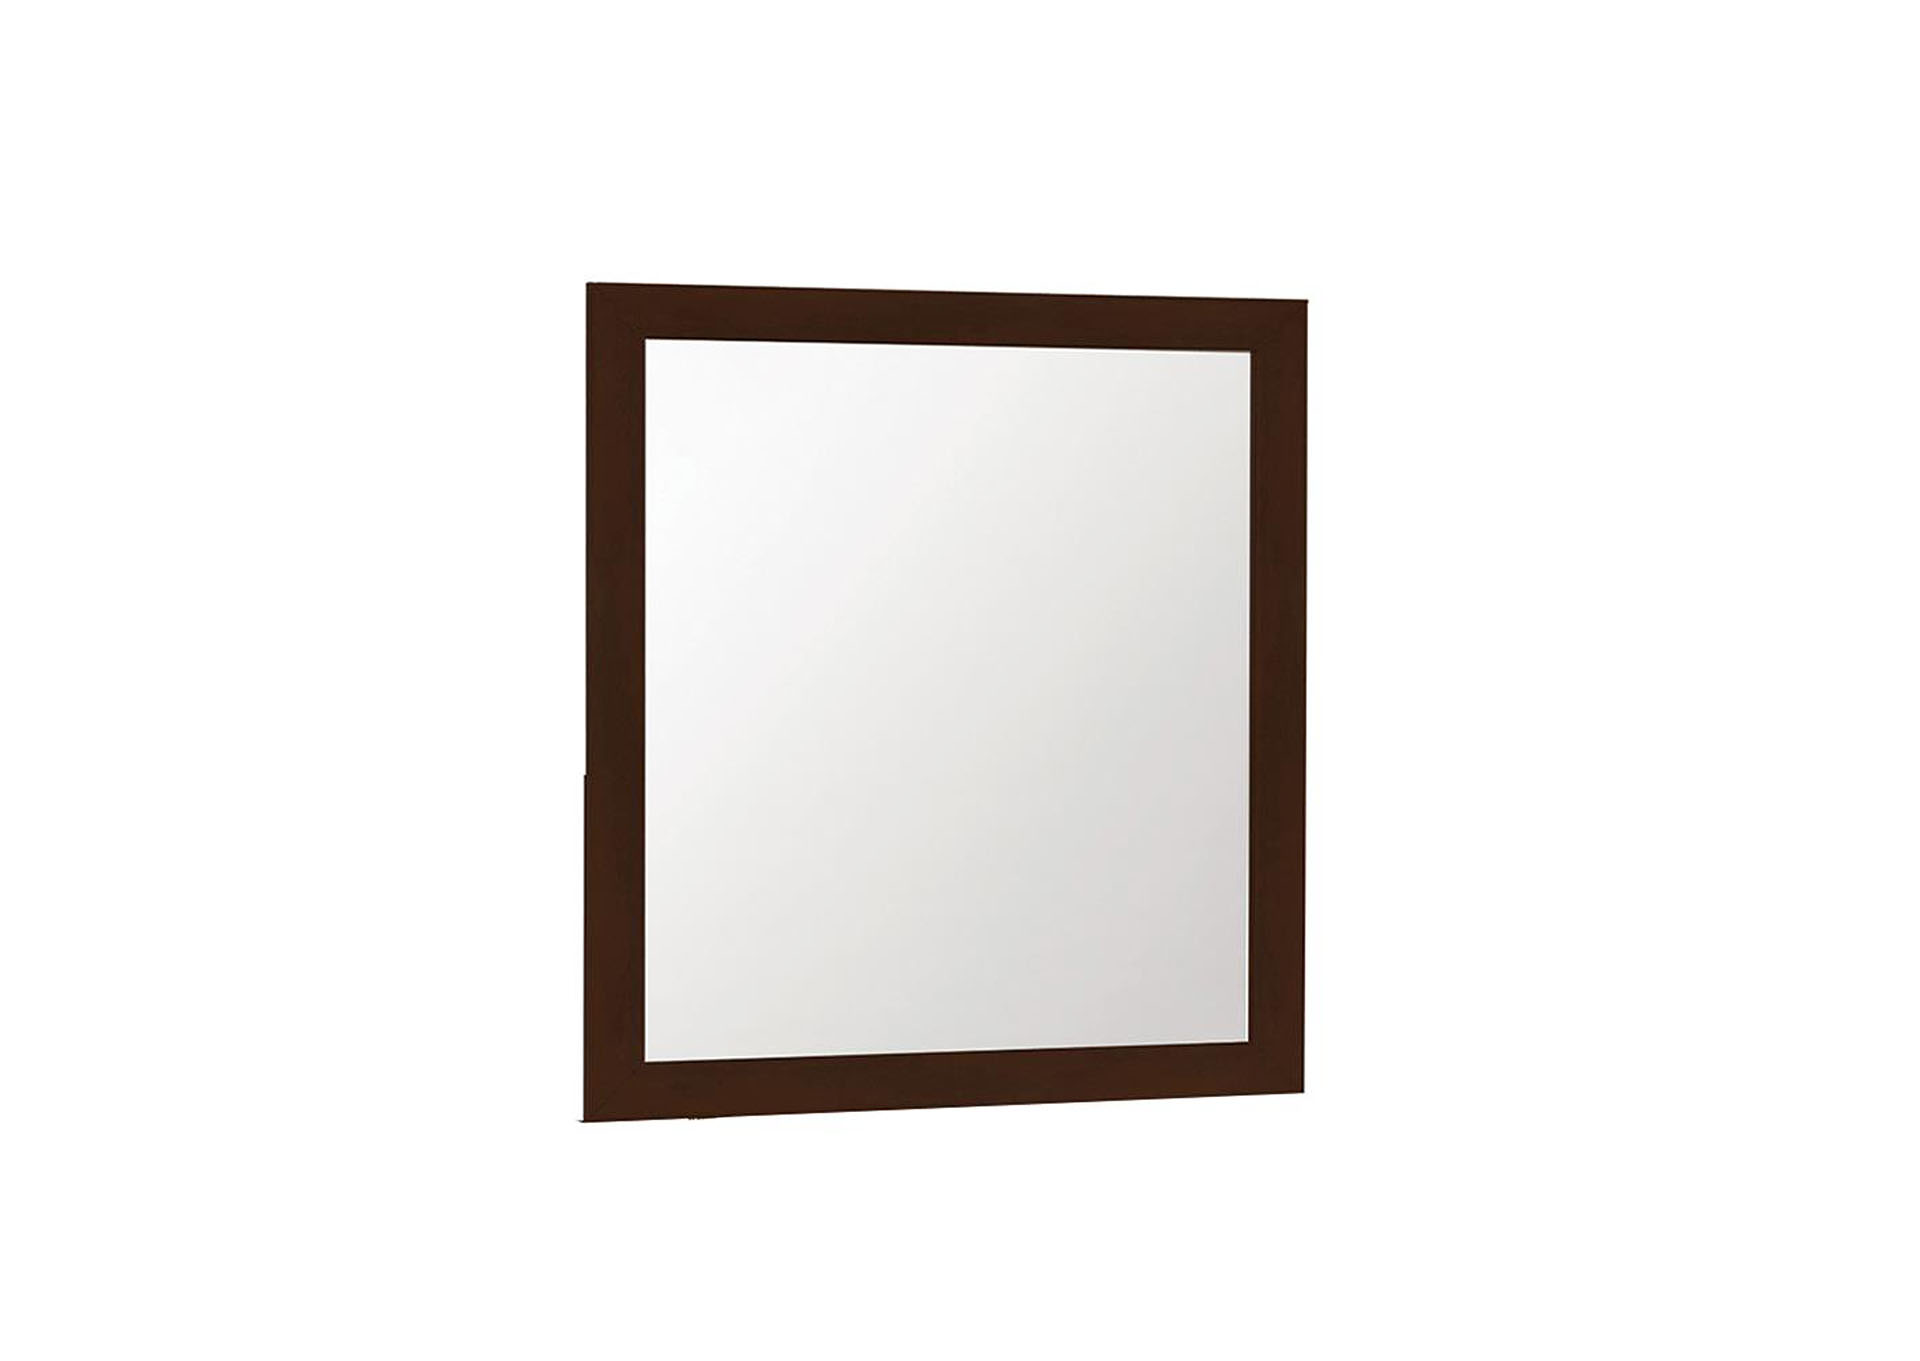 Ashton Cappuccino Mirror,Coaster Furniture